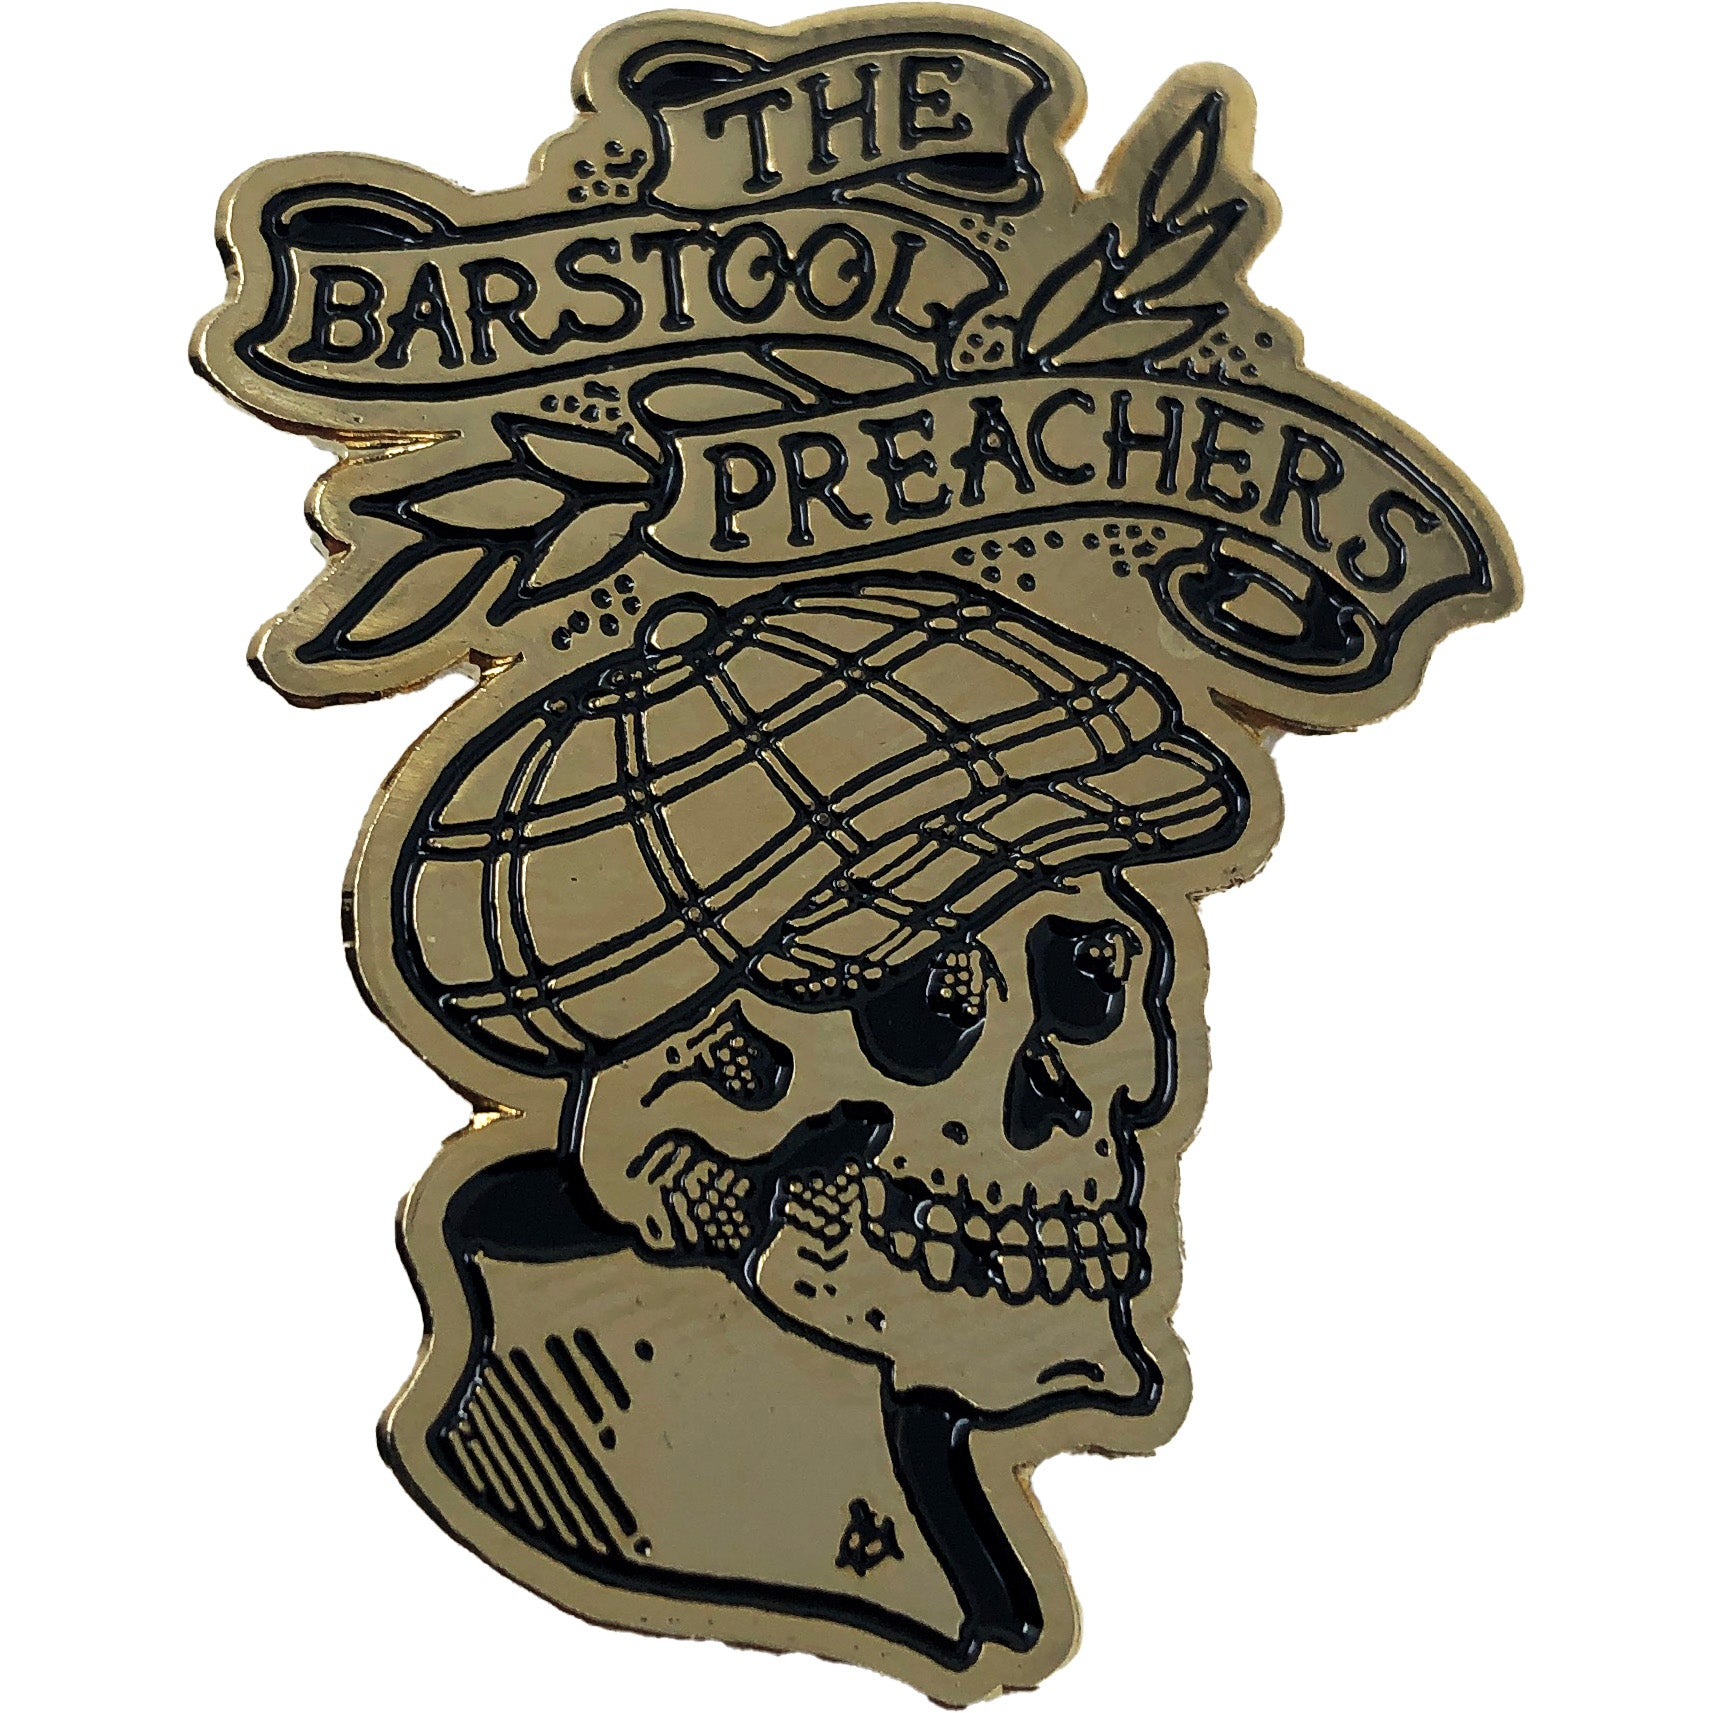 "The Bar Stool Preachers - NEW Skull Logo - 1.5"" Enamel Pin"